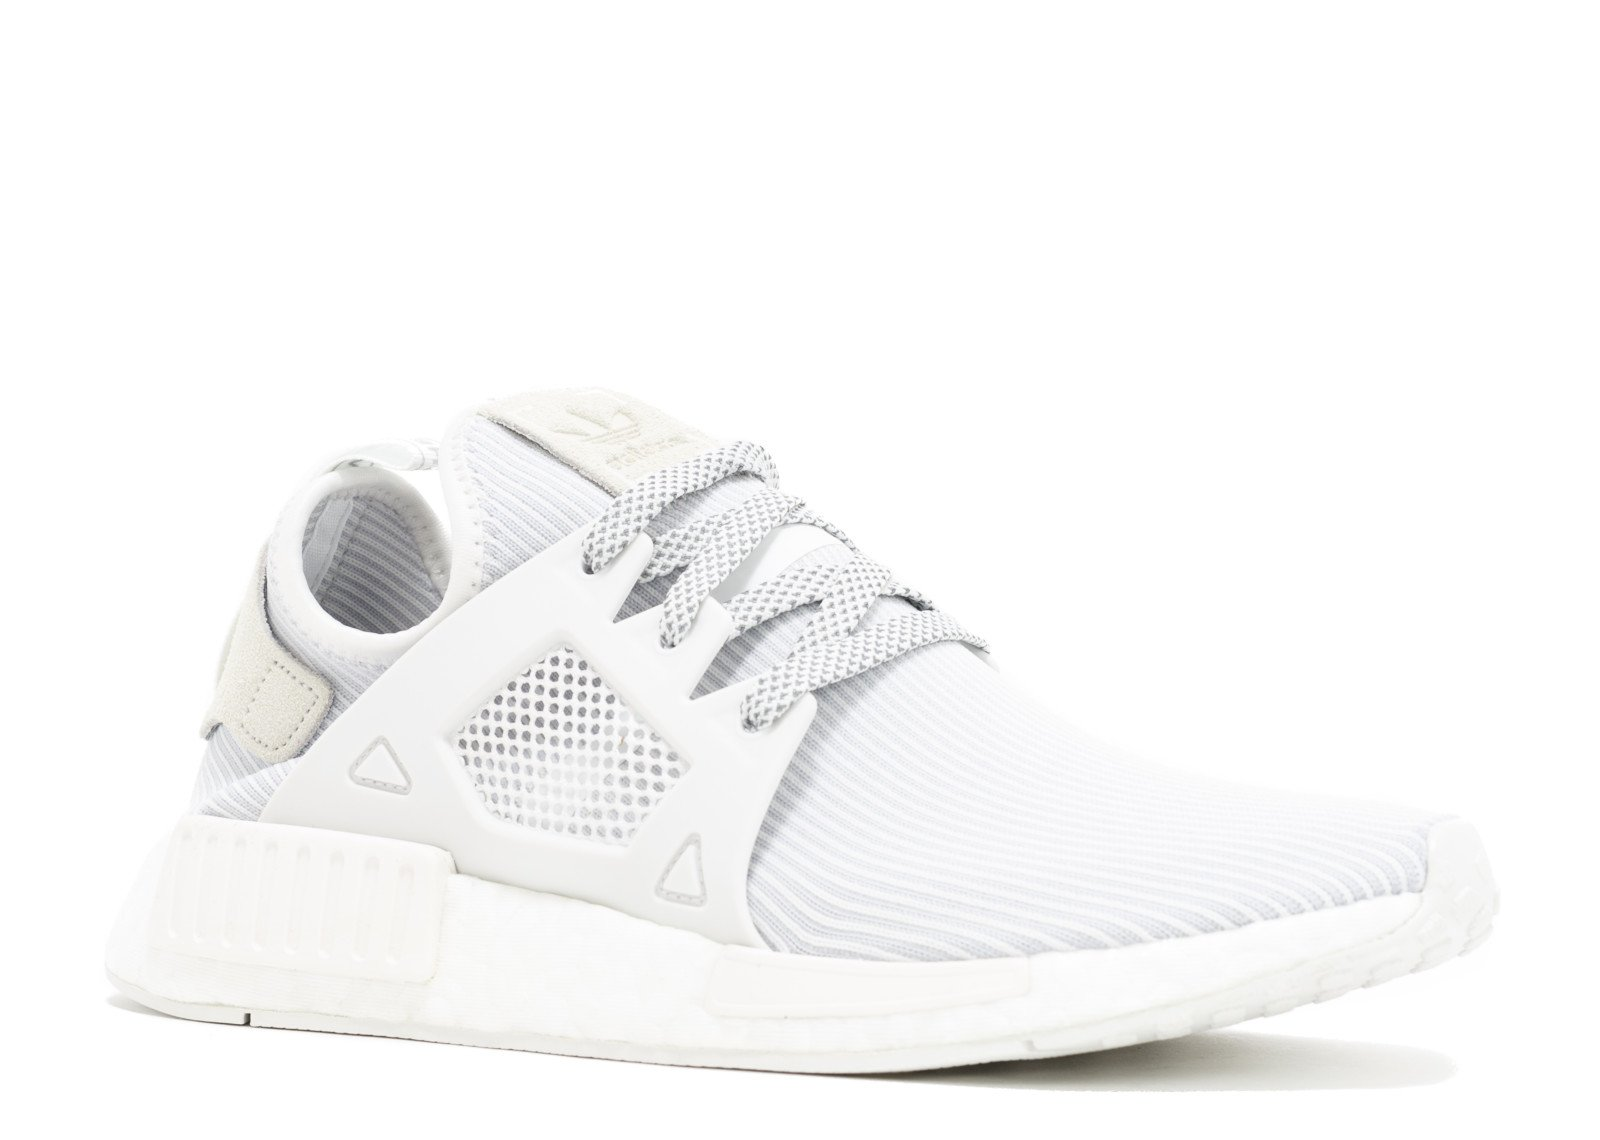 f81b47a1d0a1 Amazon.com  adidas NMD XR1 PK W  Triple White  - BB3684 - Size 7.5 ...